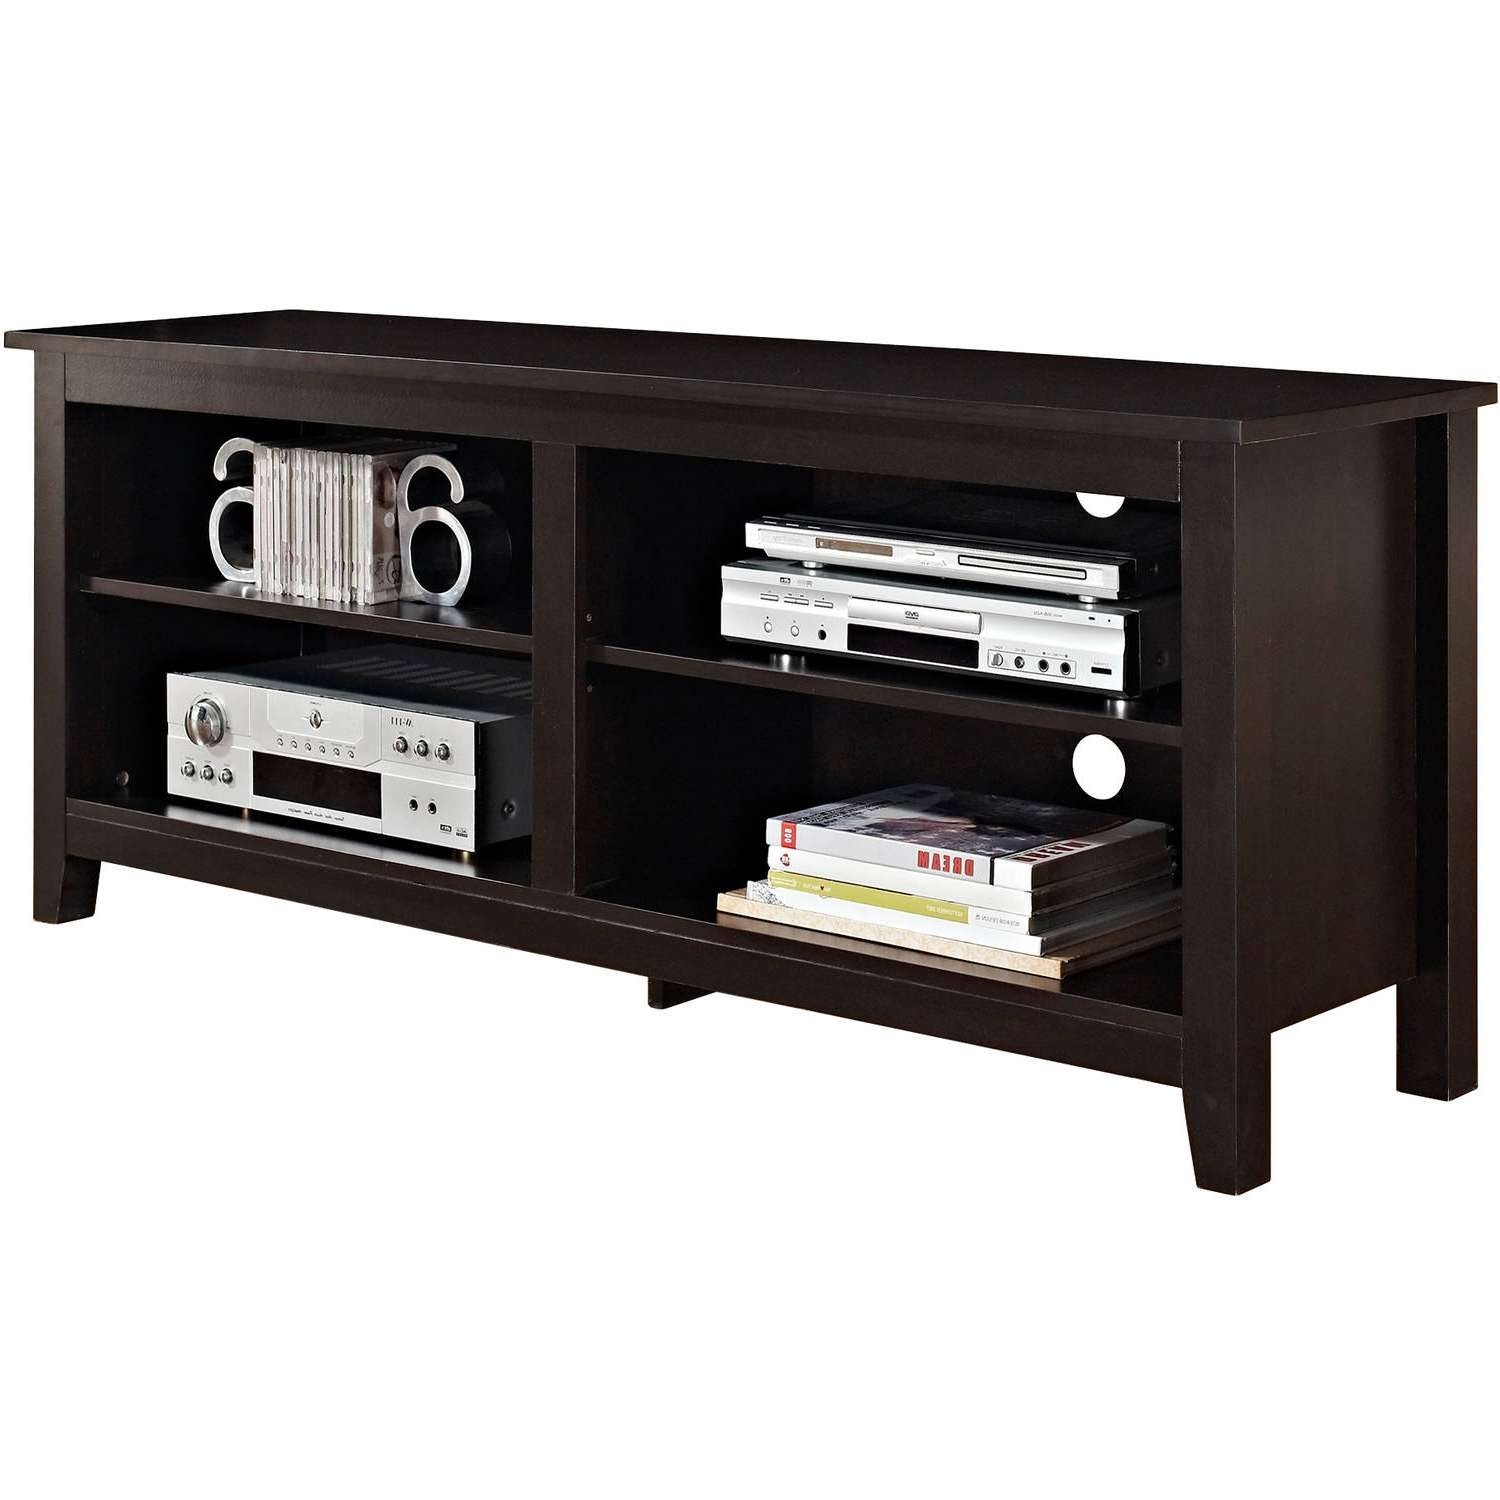 "Wood Tv Stand For Tvs Up To 60"", Espresso – Walmart In Wooden Tv Stands (View 15 of 15)"